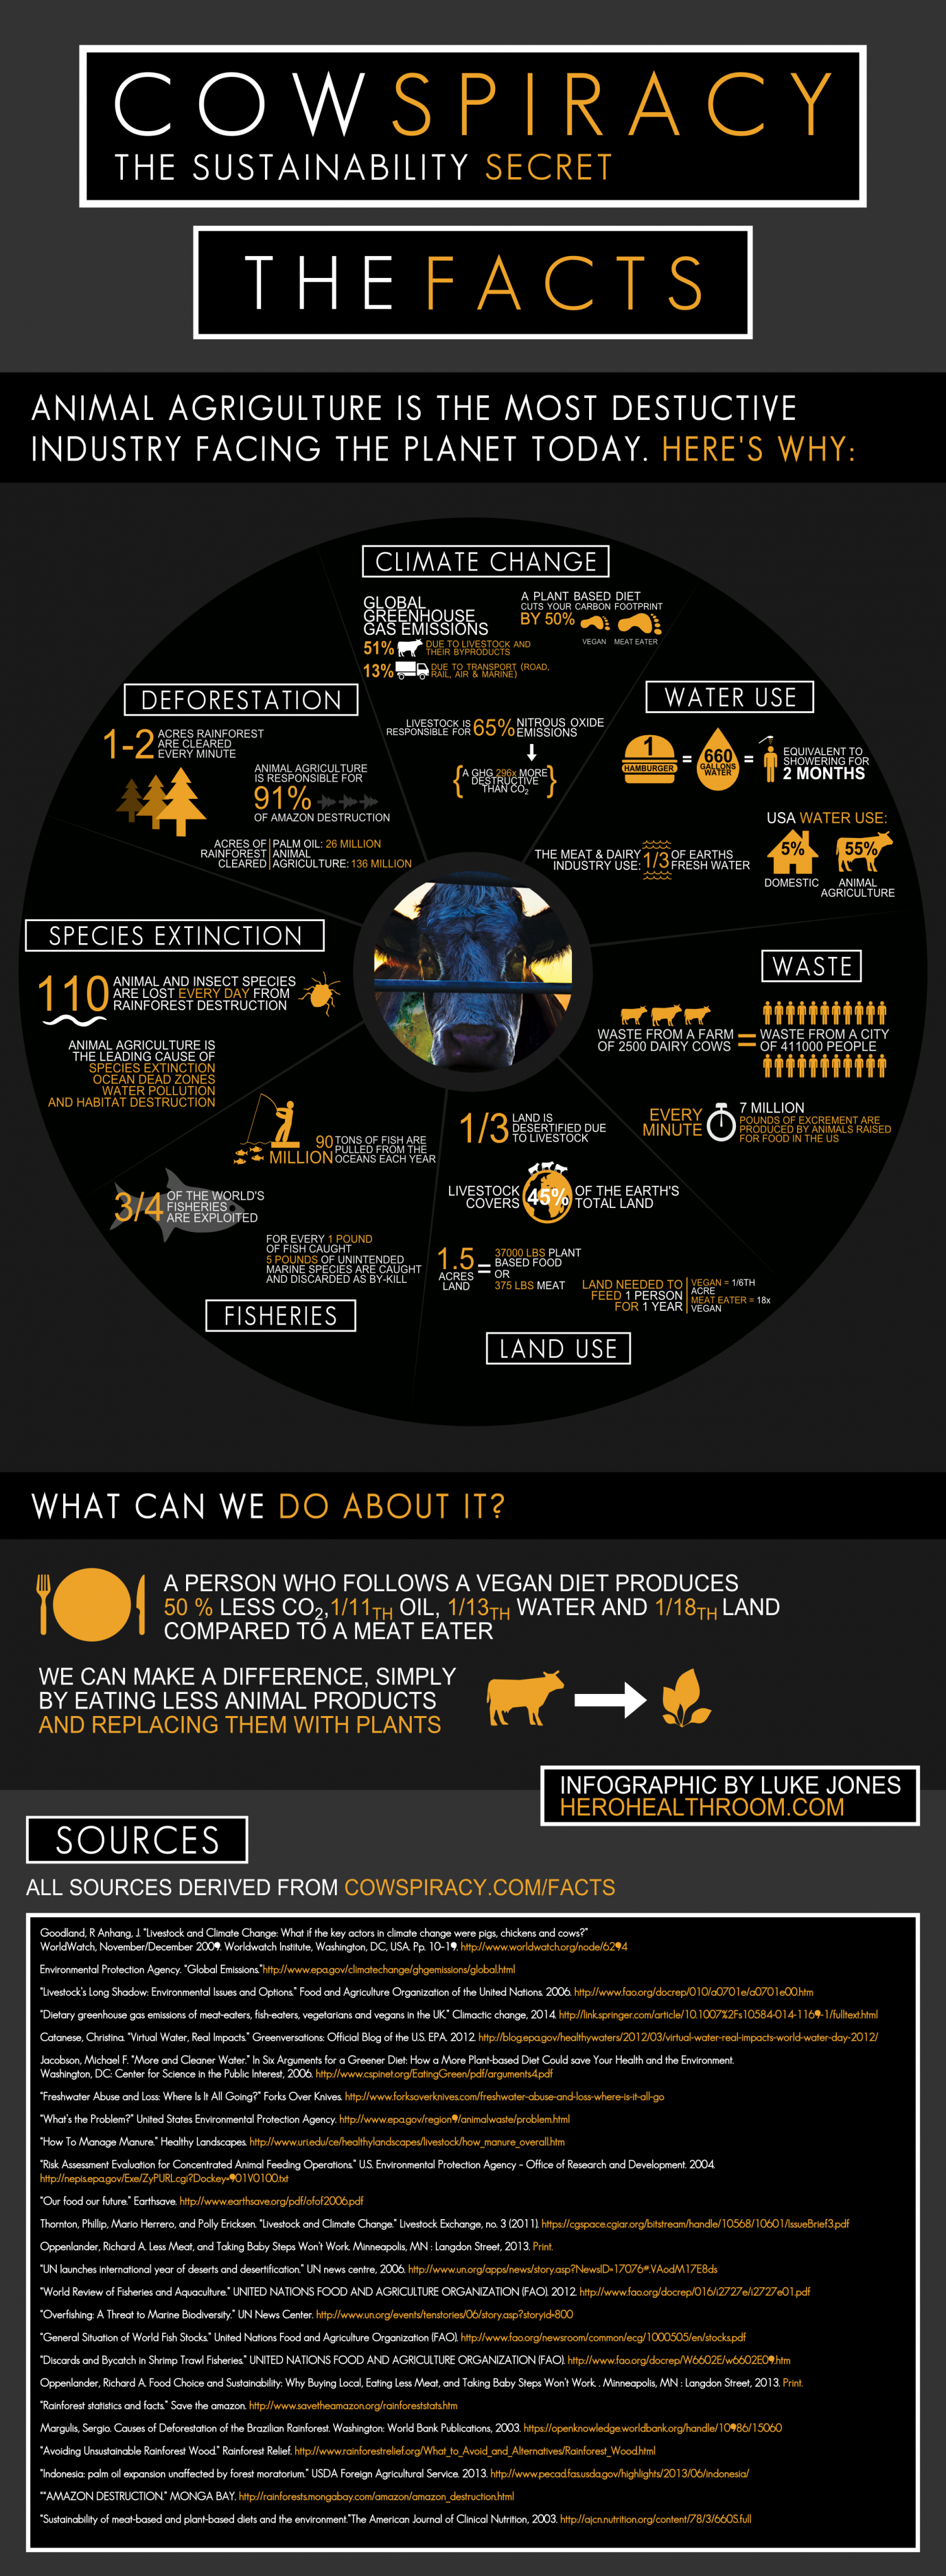 Cowspiracy Infographic: Why Animal Agriculture Is the Most Destructive Industry Facing the Planet Today  Infographic